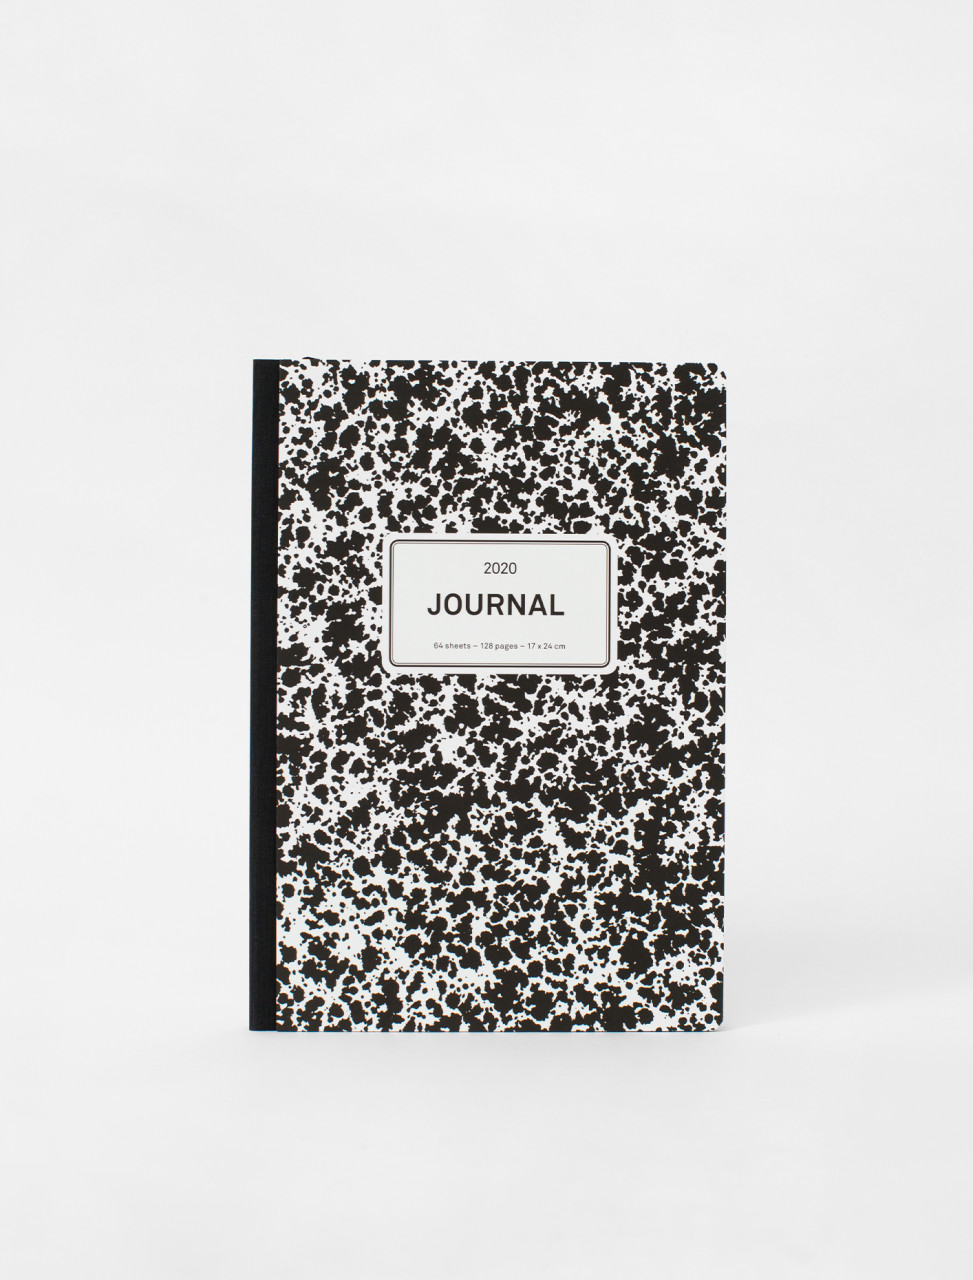 Weekly Journal 2020